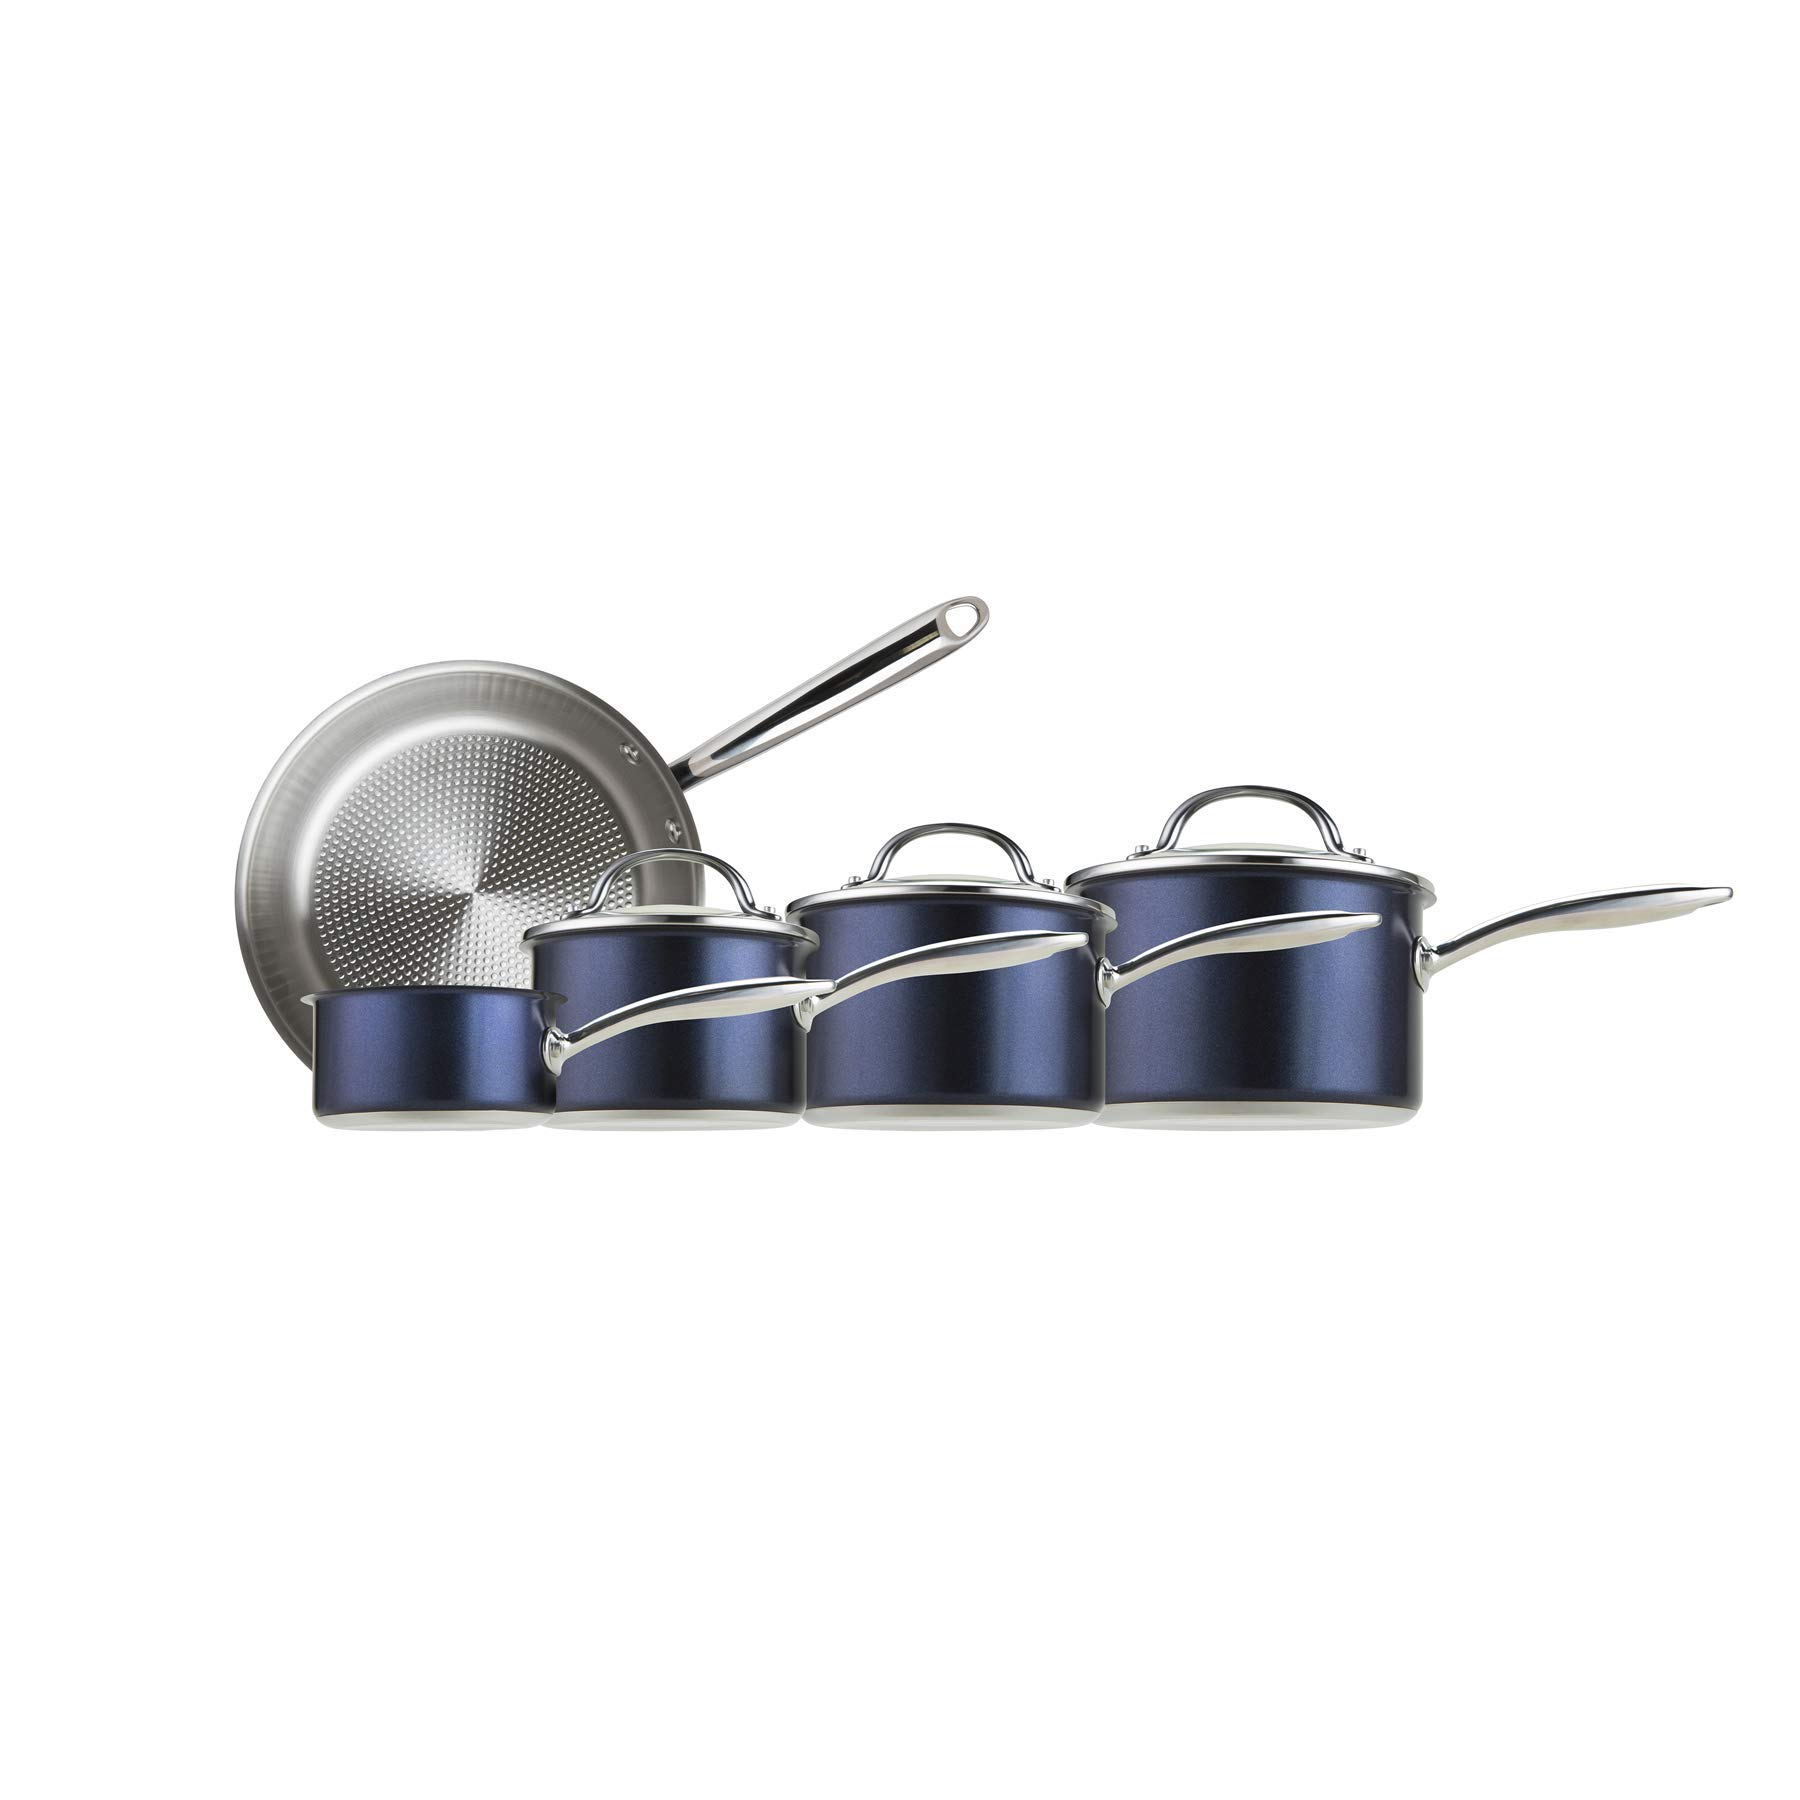 Prestige 76699 Optisteel 5 Piece Aluminium cookware Set-Blue, Stainless steel and glass,